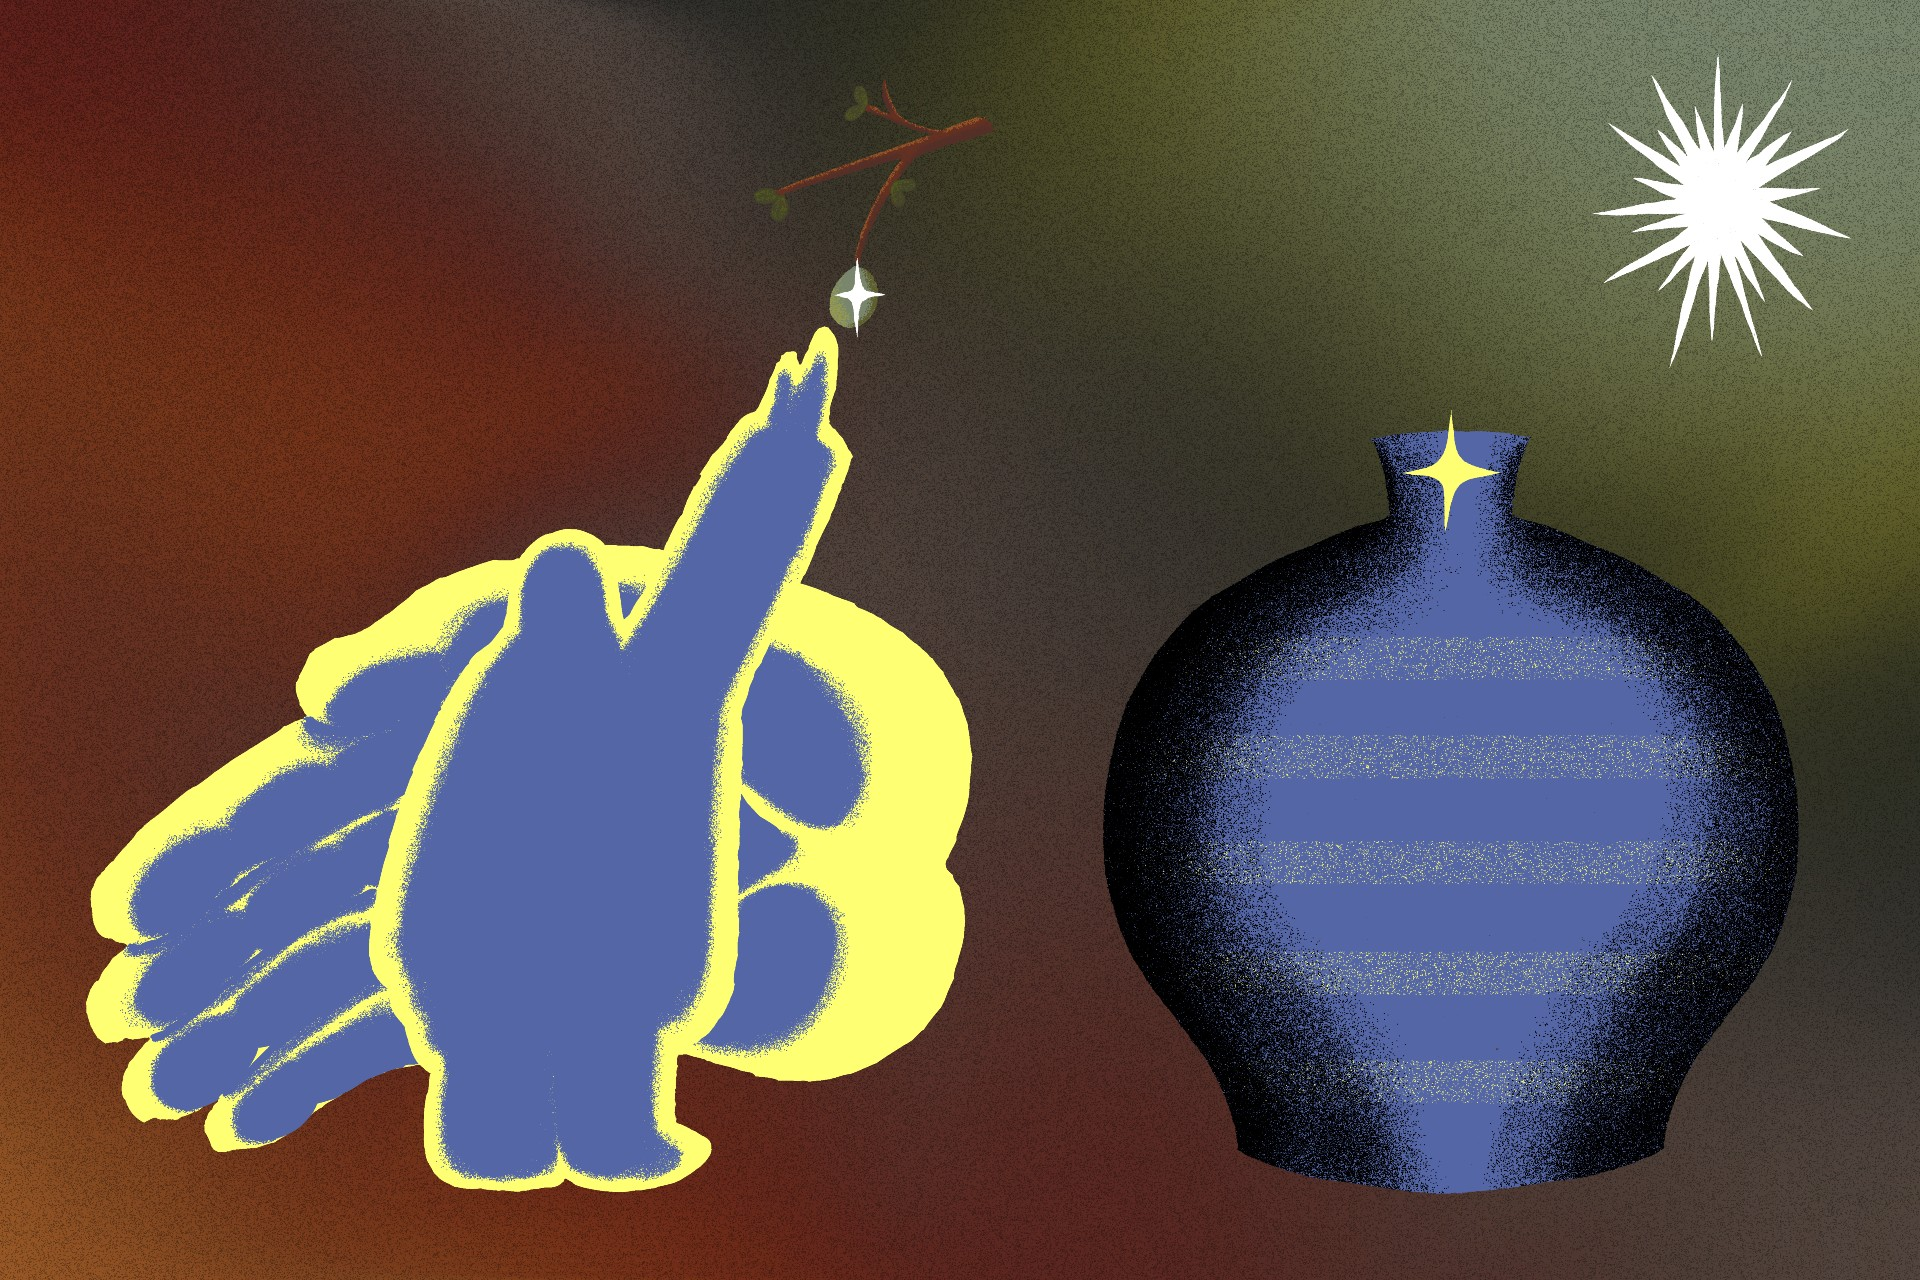 An illustration of a white sun-like image in the top-right. A blue vessel sits on the right bottom and on the left bottom sits a blue and yellow hand gently support a character person from behind. The person is reaching up to a branch.